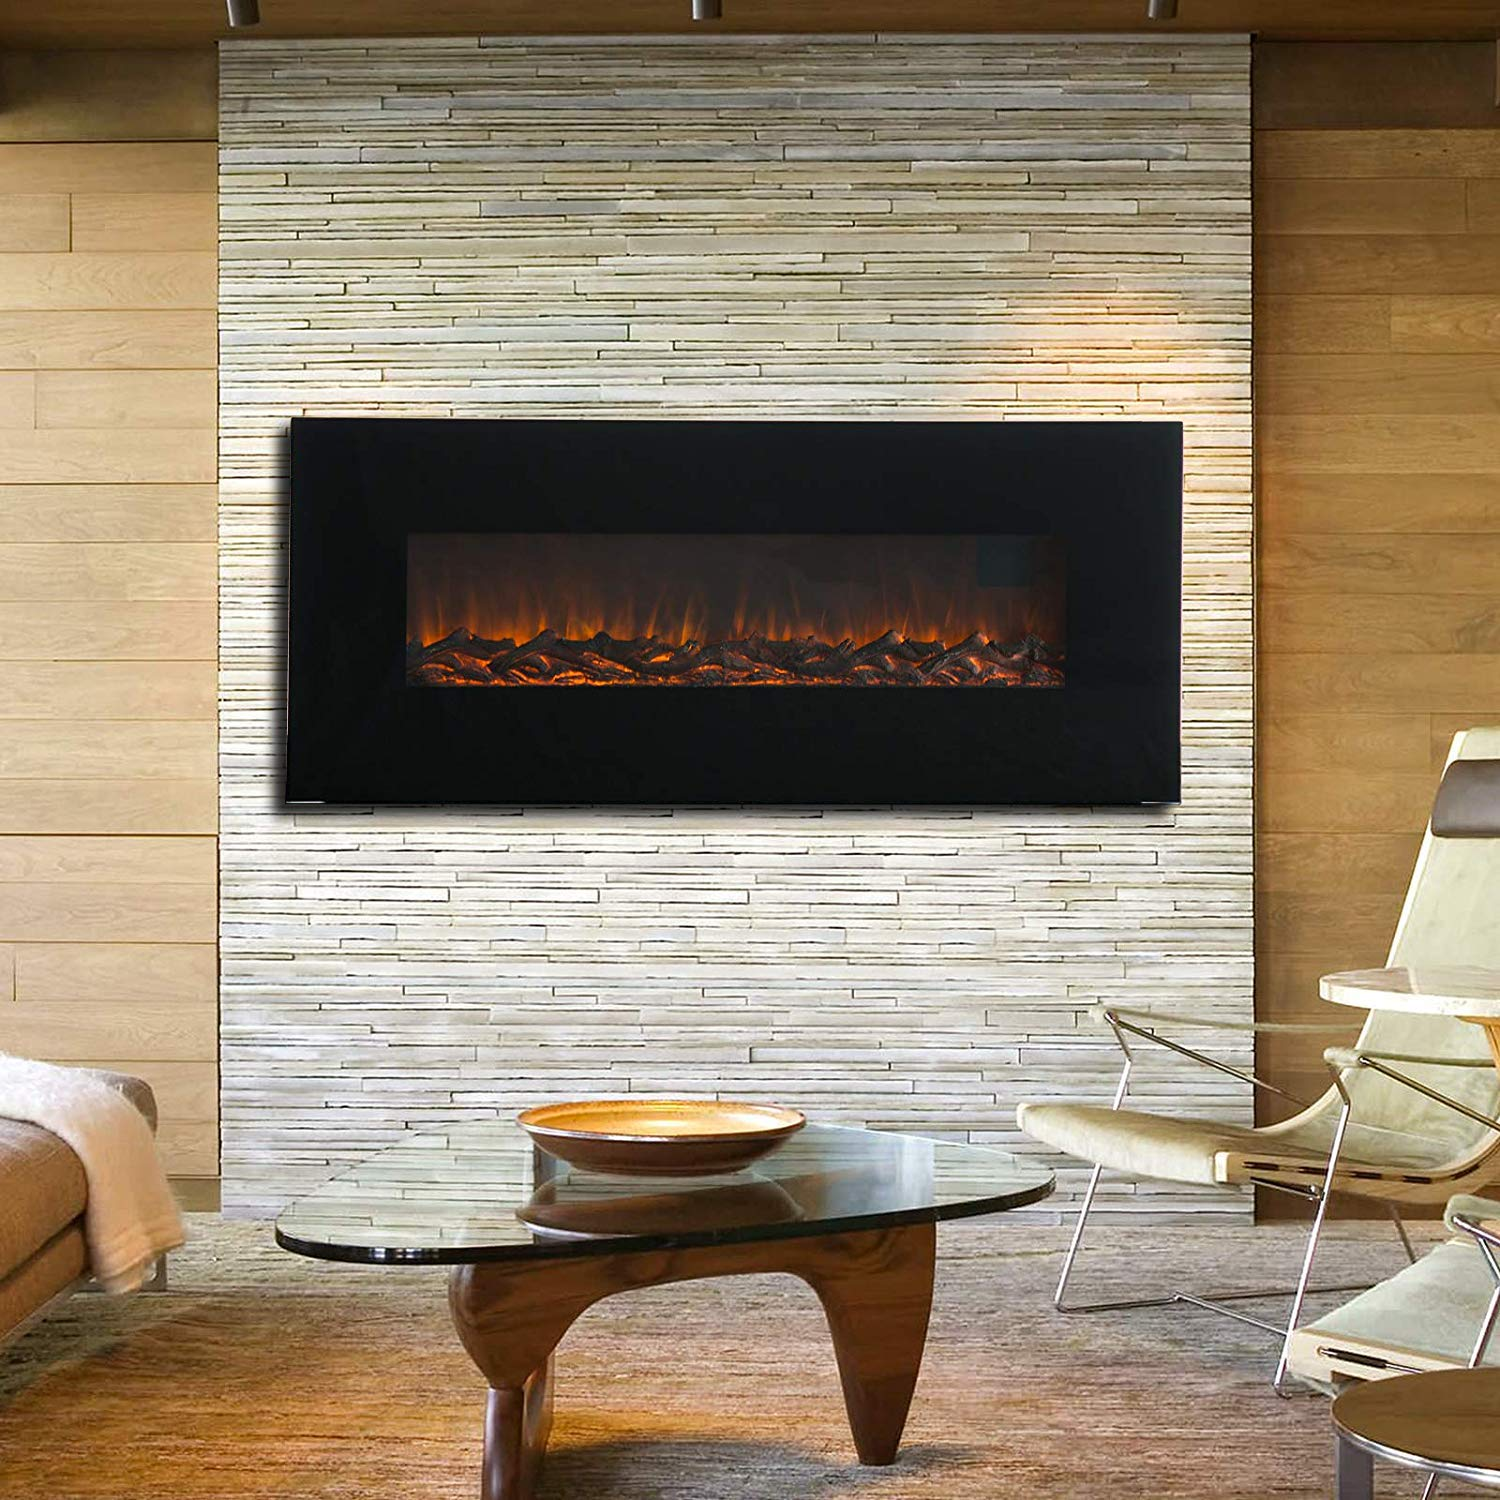 Amazon Com Kuppet 50 Wall Mounted Electric Fireplace 1500w